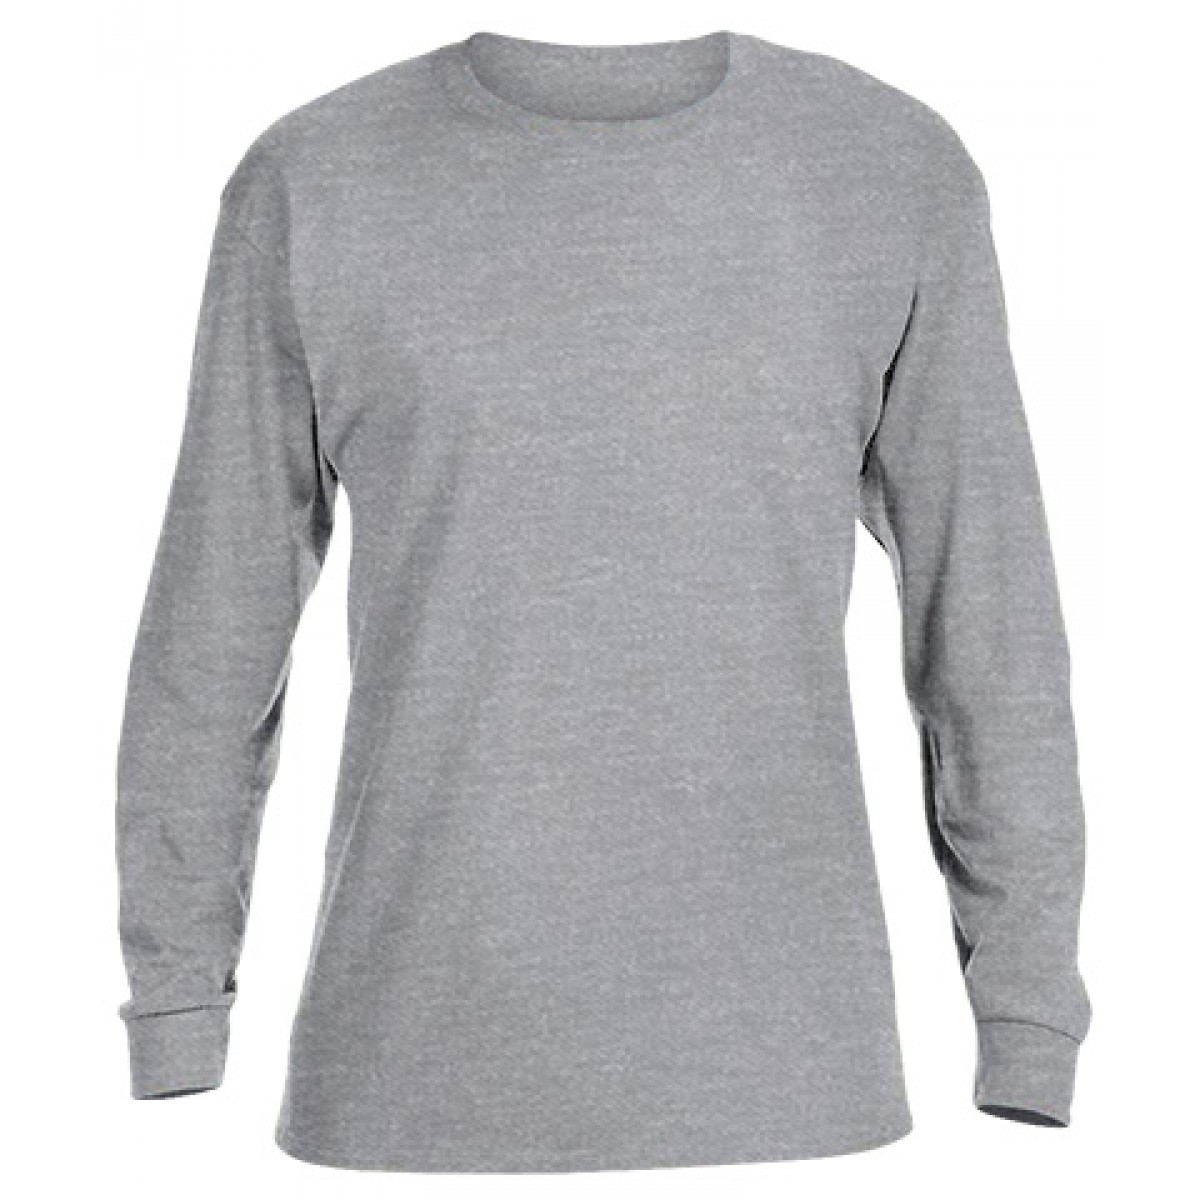 Basic Long Sleeve Crew Neck -Ash Gray-YM